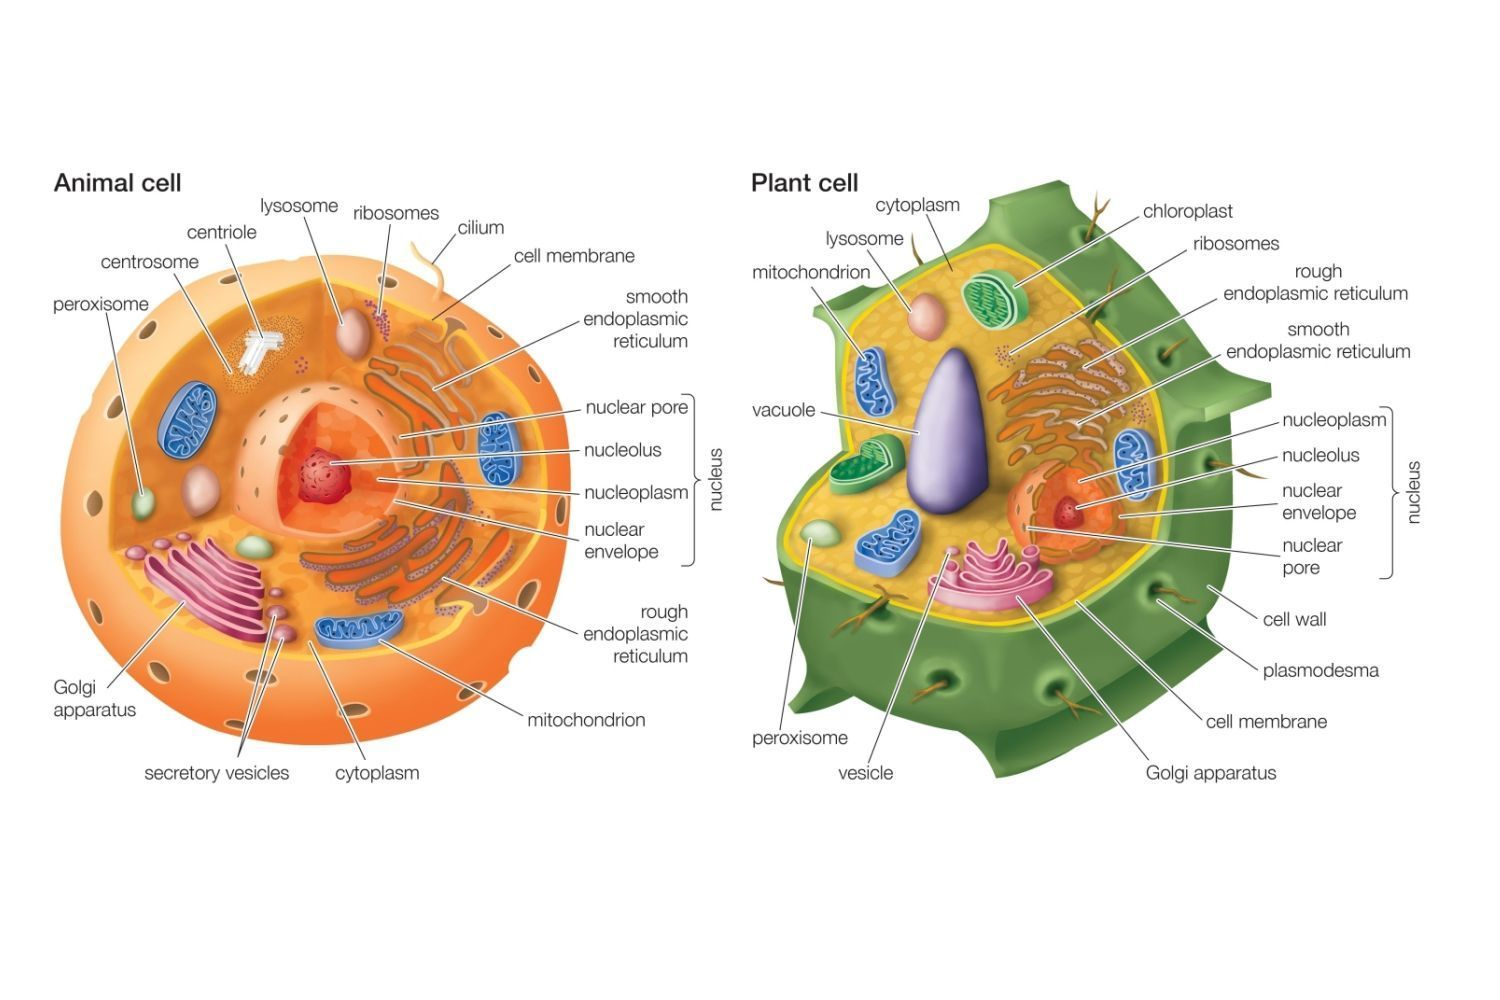 Which Structures Are Found In Plant Cells But Not In